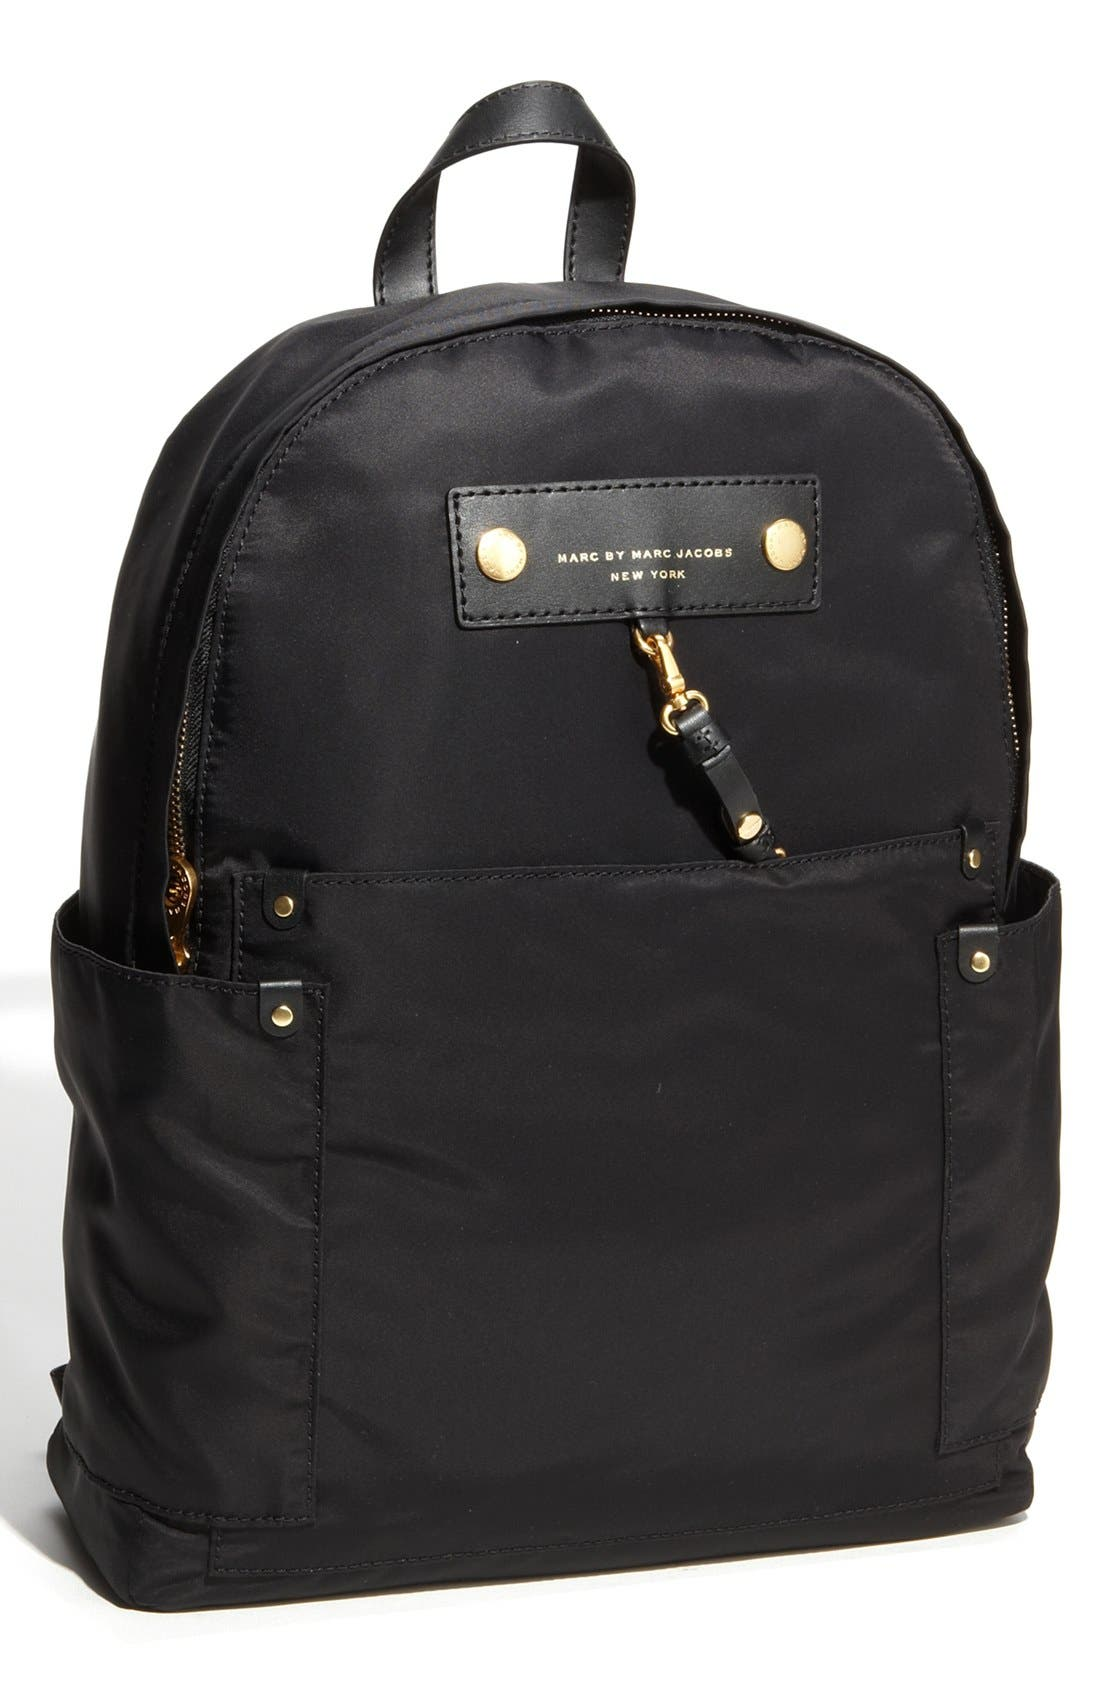 MARC JACOBS MARC BY MARC JACOBS 'Preppy Nylon' Backpack, Main, color, 002